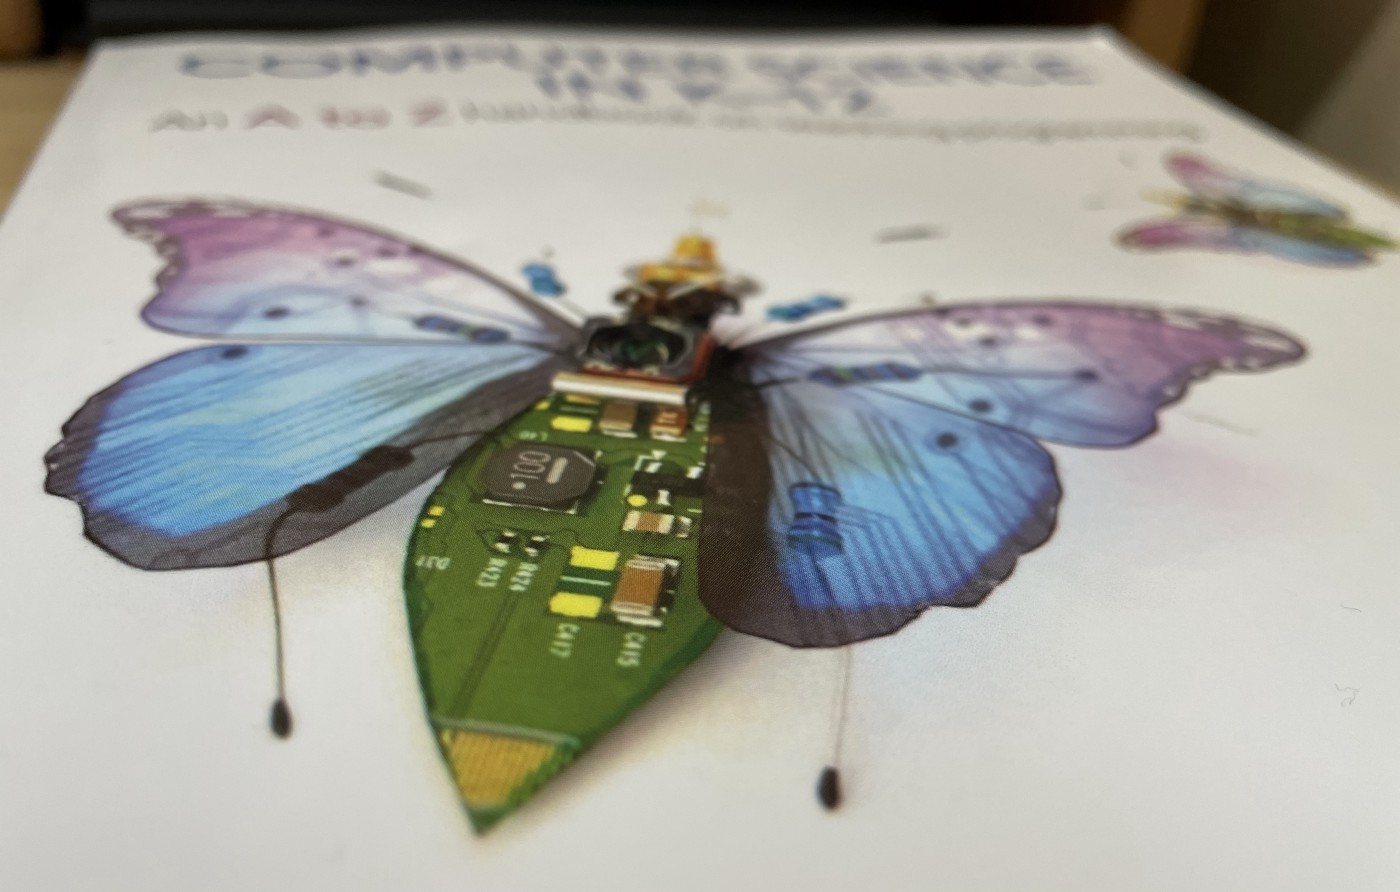 A photograph of the book over showing a robotic butterfly and the book title, blurred in the background.